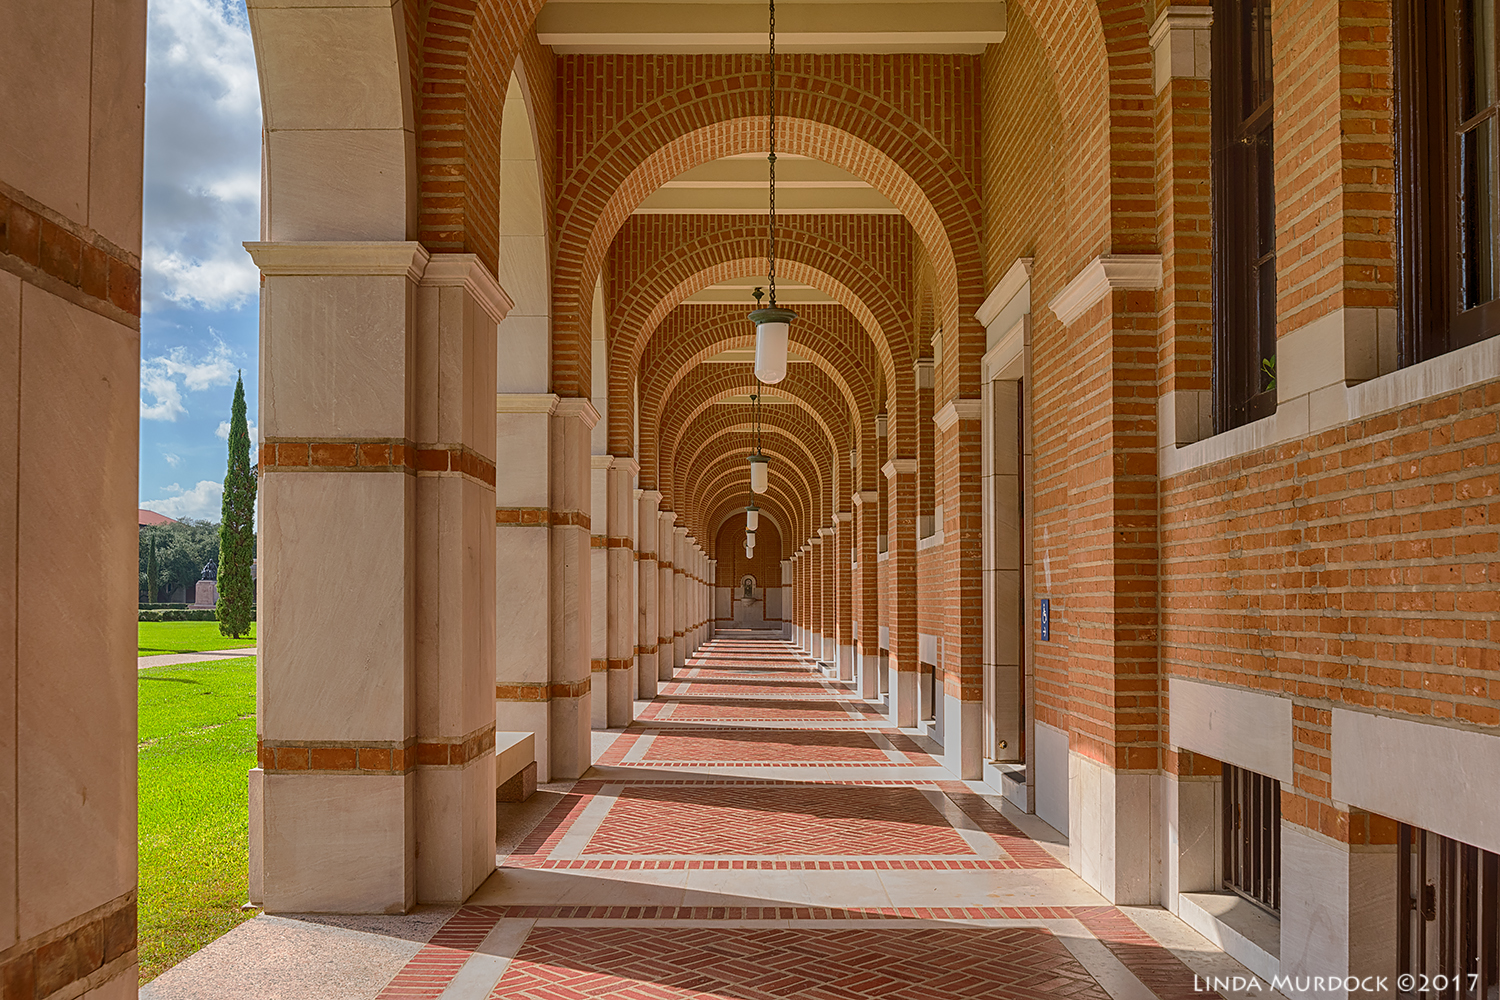 Arched hallway at Rice University Nikon D810 with Tamron 15-30 f/2.8 ~ ISO 400 f/8 at 30mm HDR; tripod